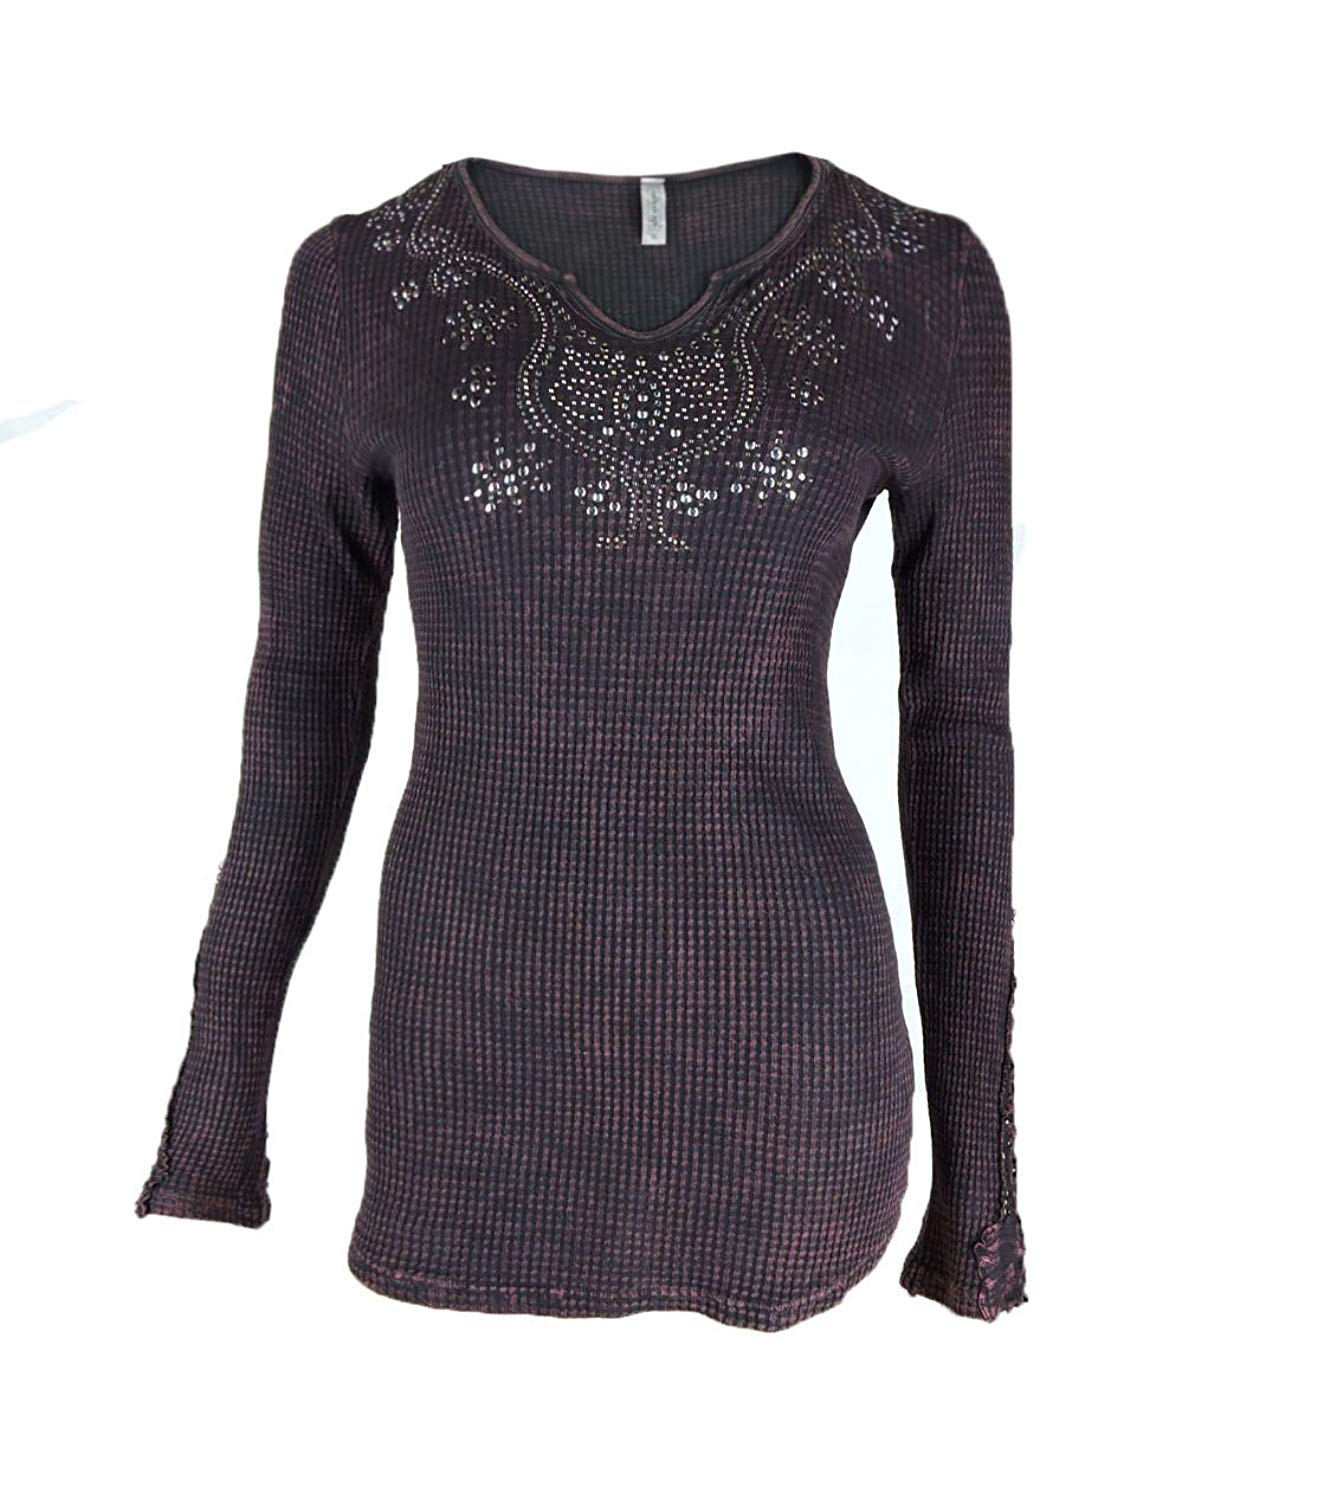 240ec9cc0e80 Get Quotations · Vocal American Age Women Tunic Shirt Lace Sleeves Tribal  Rhinestone Cowgirl Mineral Wash